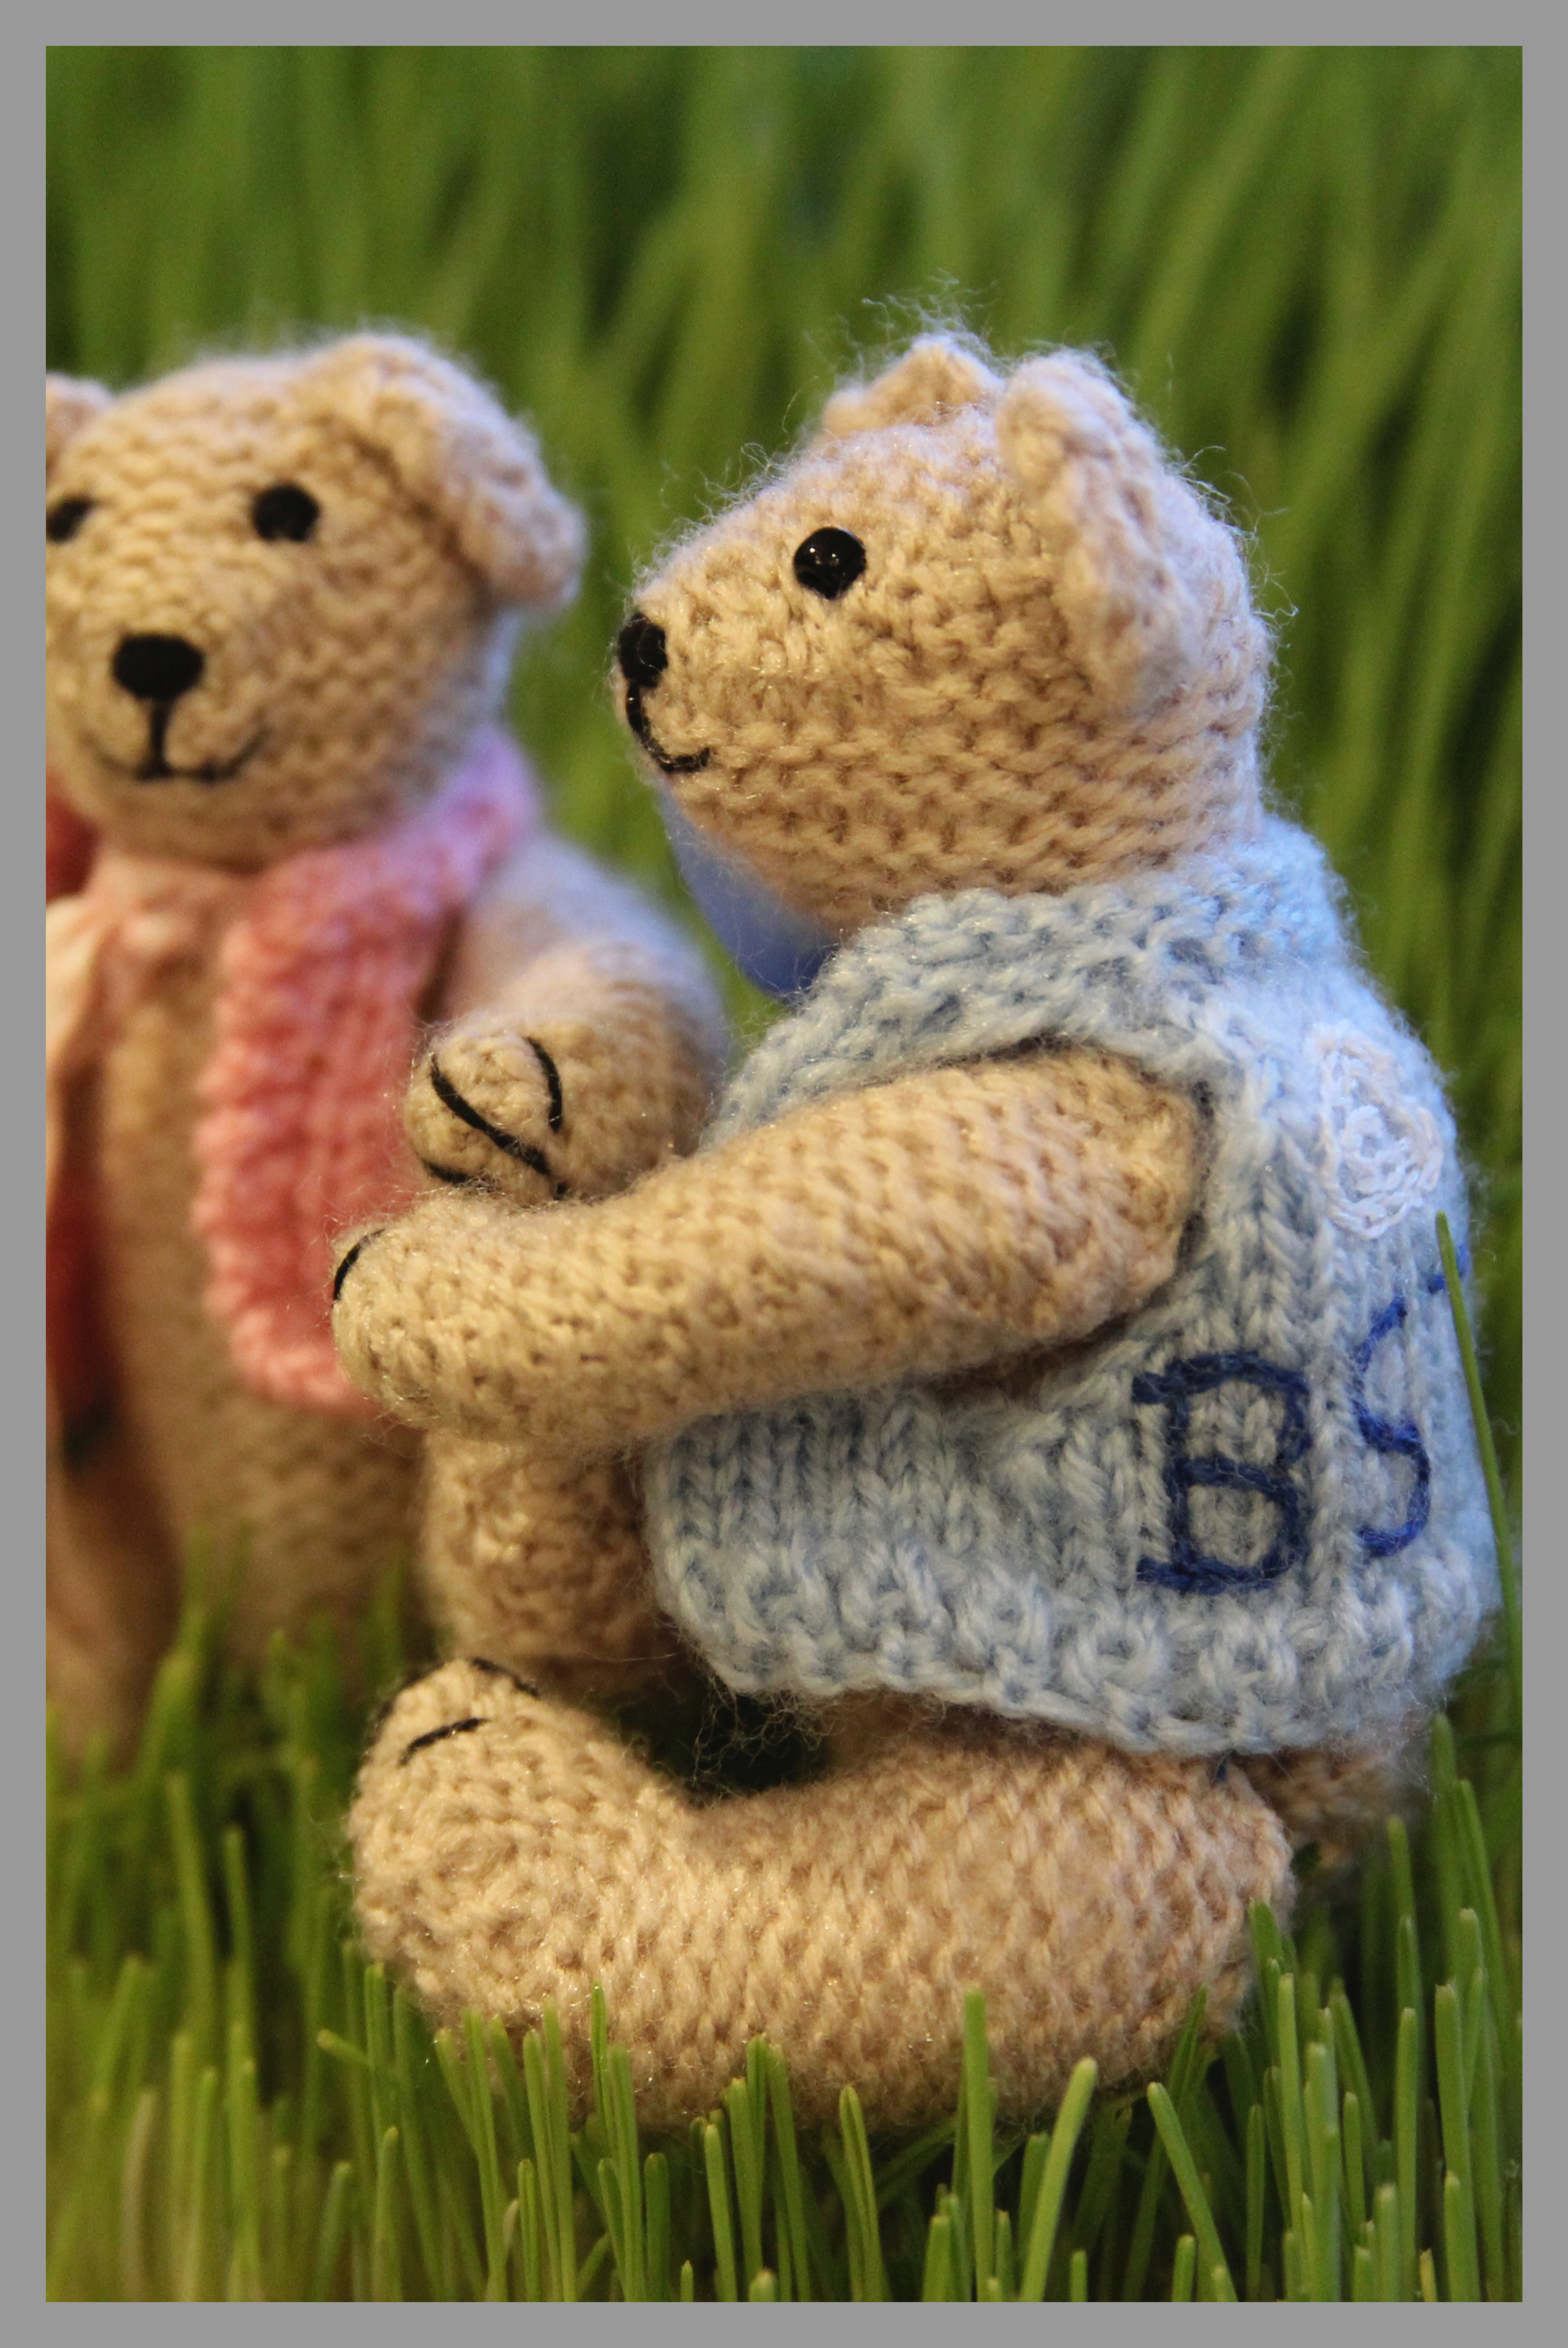 Personalised Knitted Bears  Get your very own personalised bear. They make lovely gifts for everyone from newborns to shabby chic lovers. To order yours, contact Sarah Backhouse directly on:  sarahbackhouse269@btinternet.com  or by phoning on 01243 511314 or 0781 369 6745.